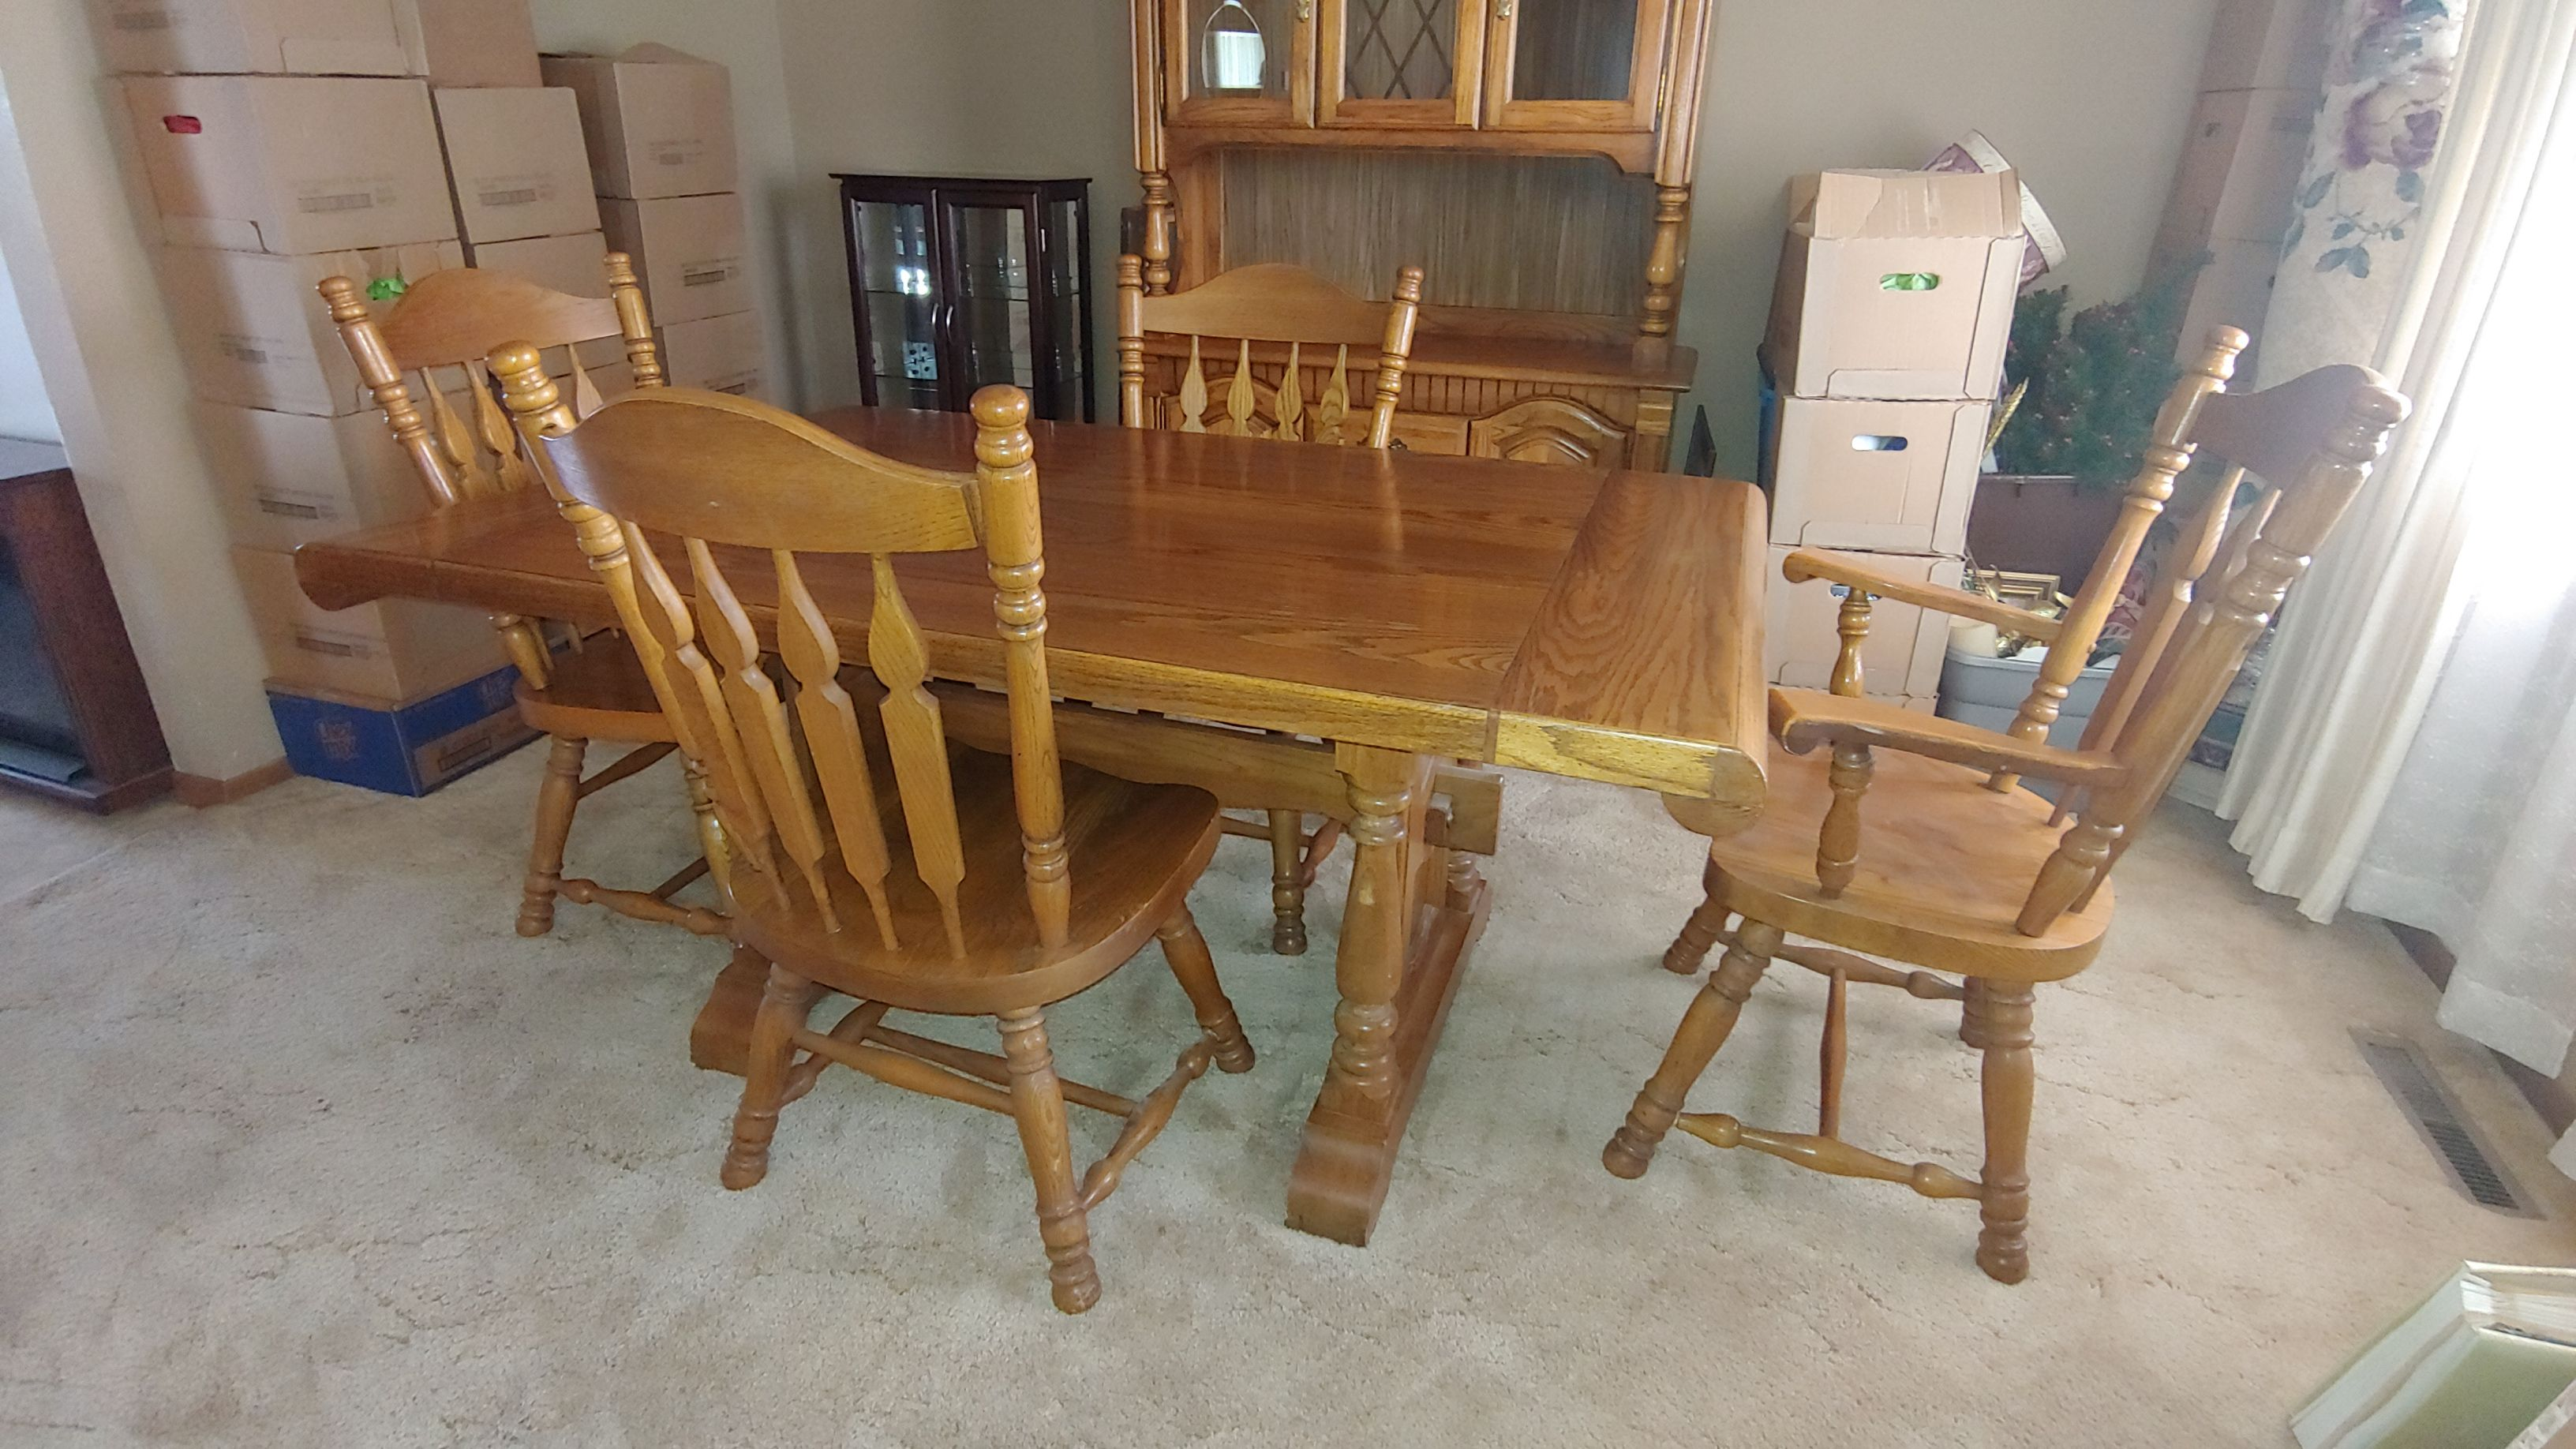 Item 34 in Real Estate and Personal Property Auction gallery